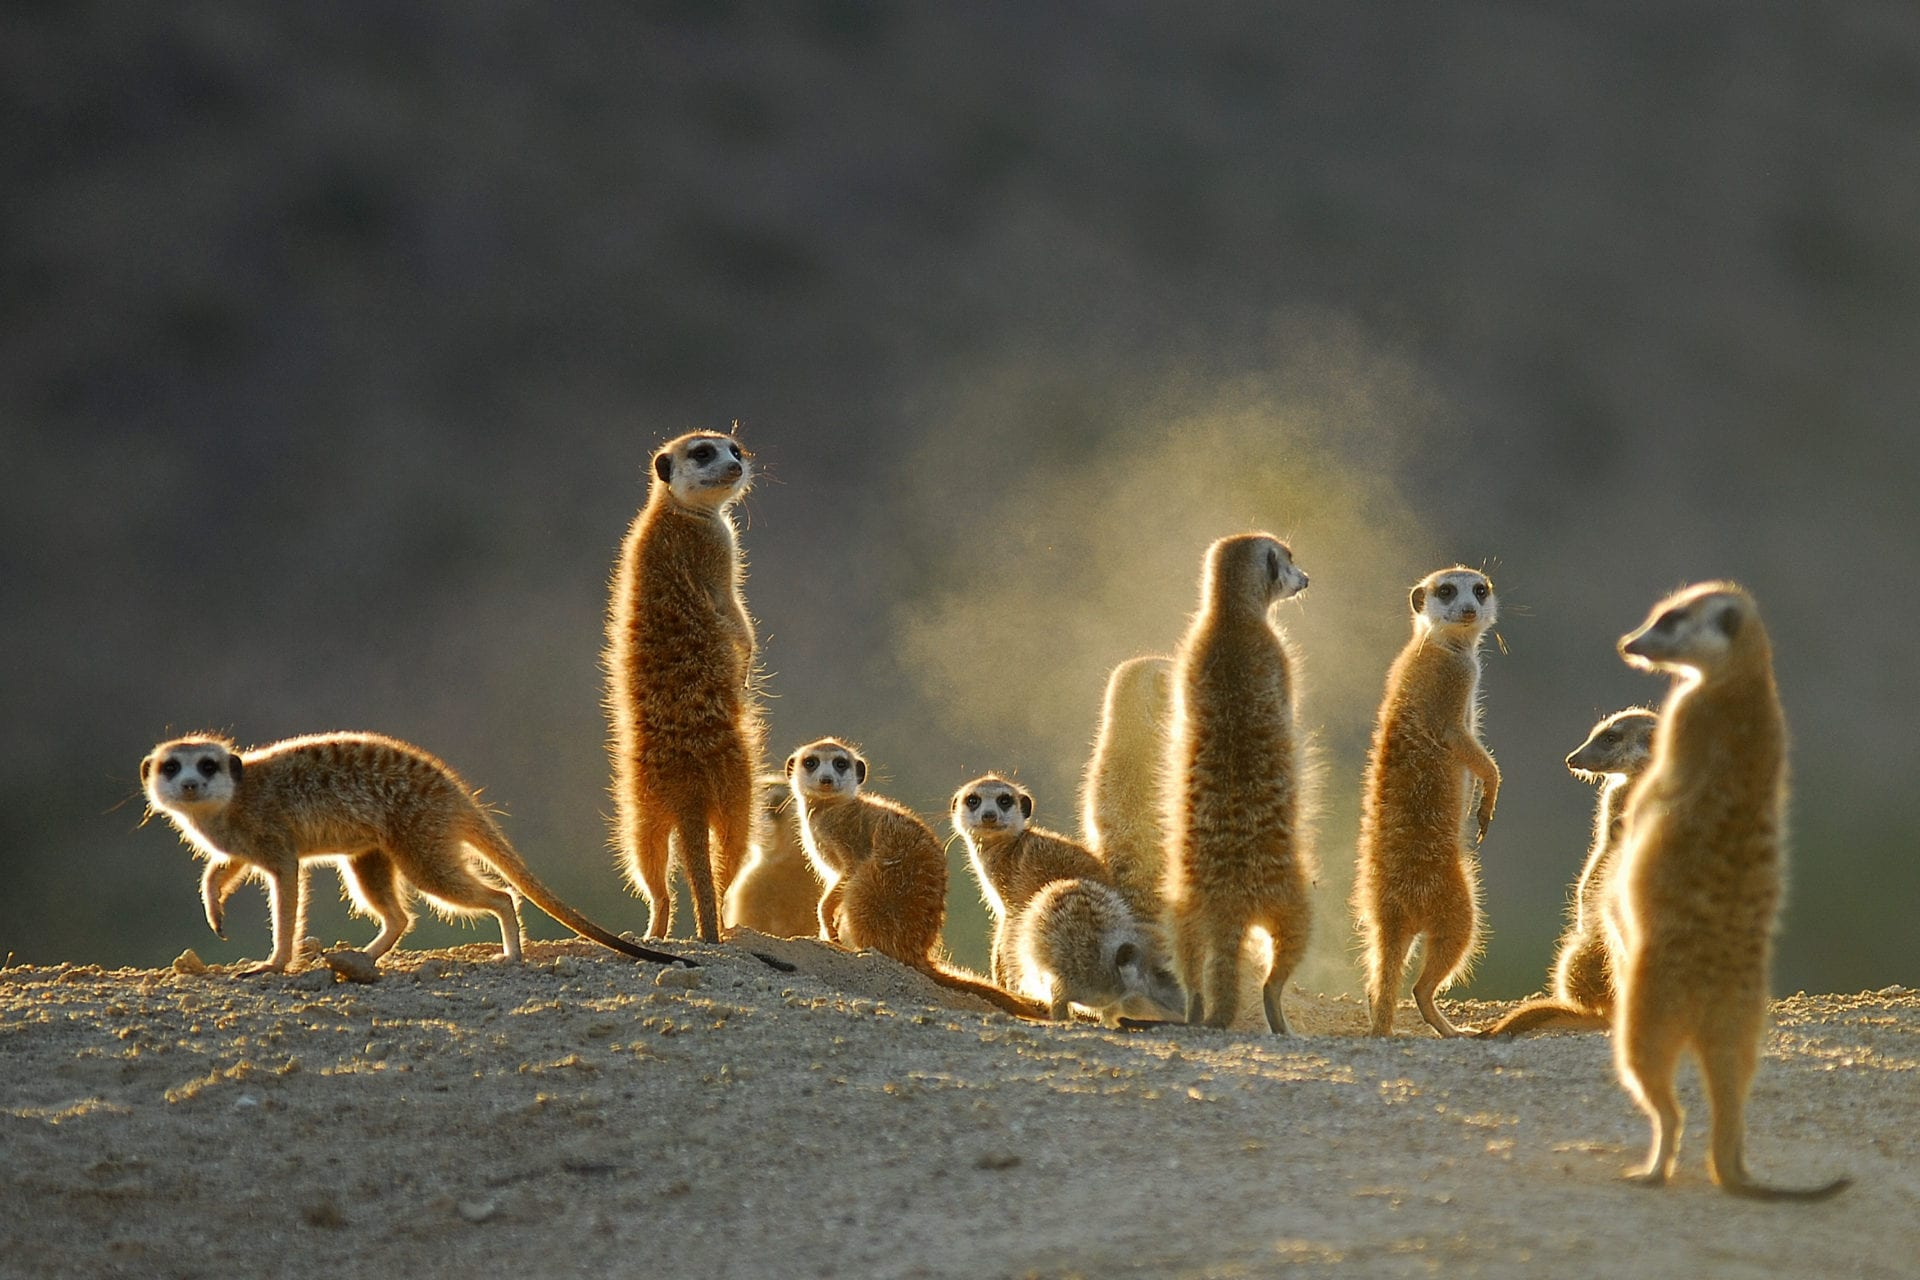 Effects of Light Pollution on Foraging Behaviour of Rodents